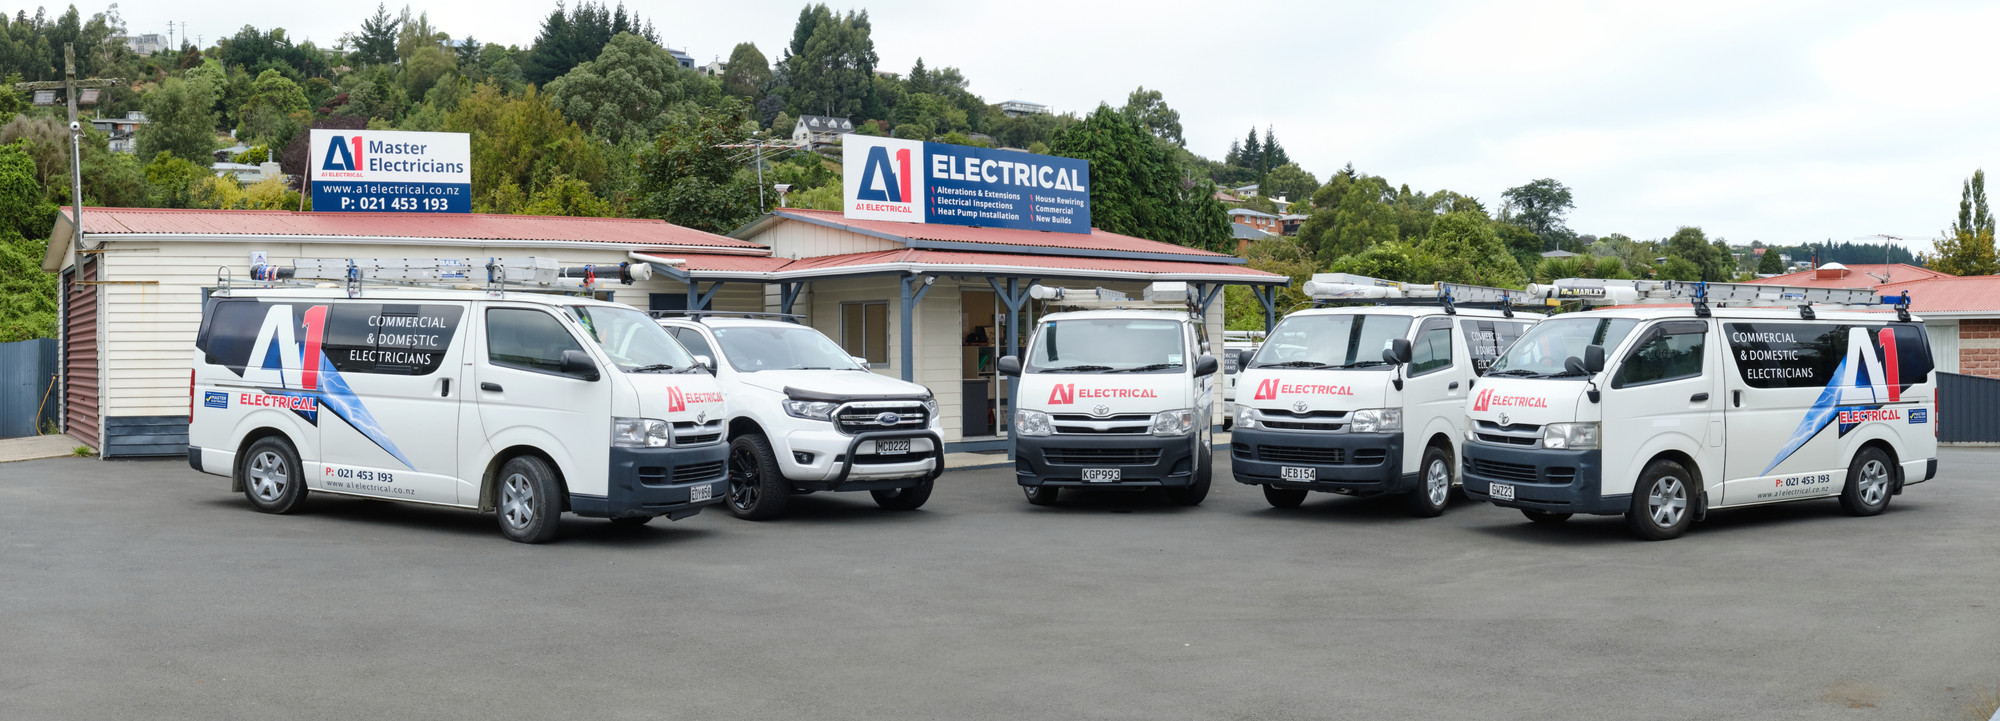 A1 Electrical premises and vehicles. Website by Turboweb.